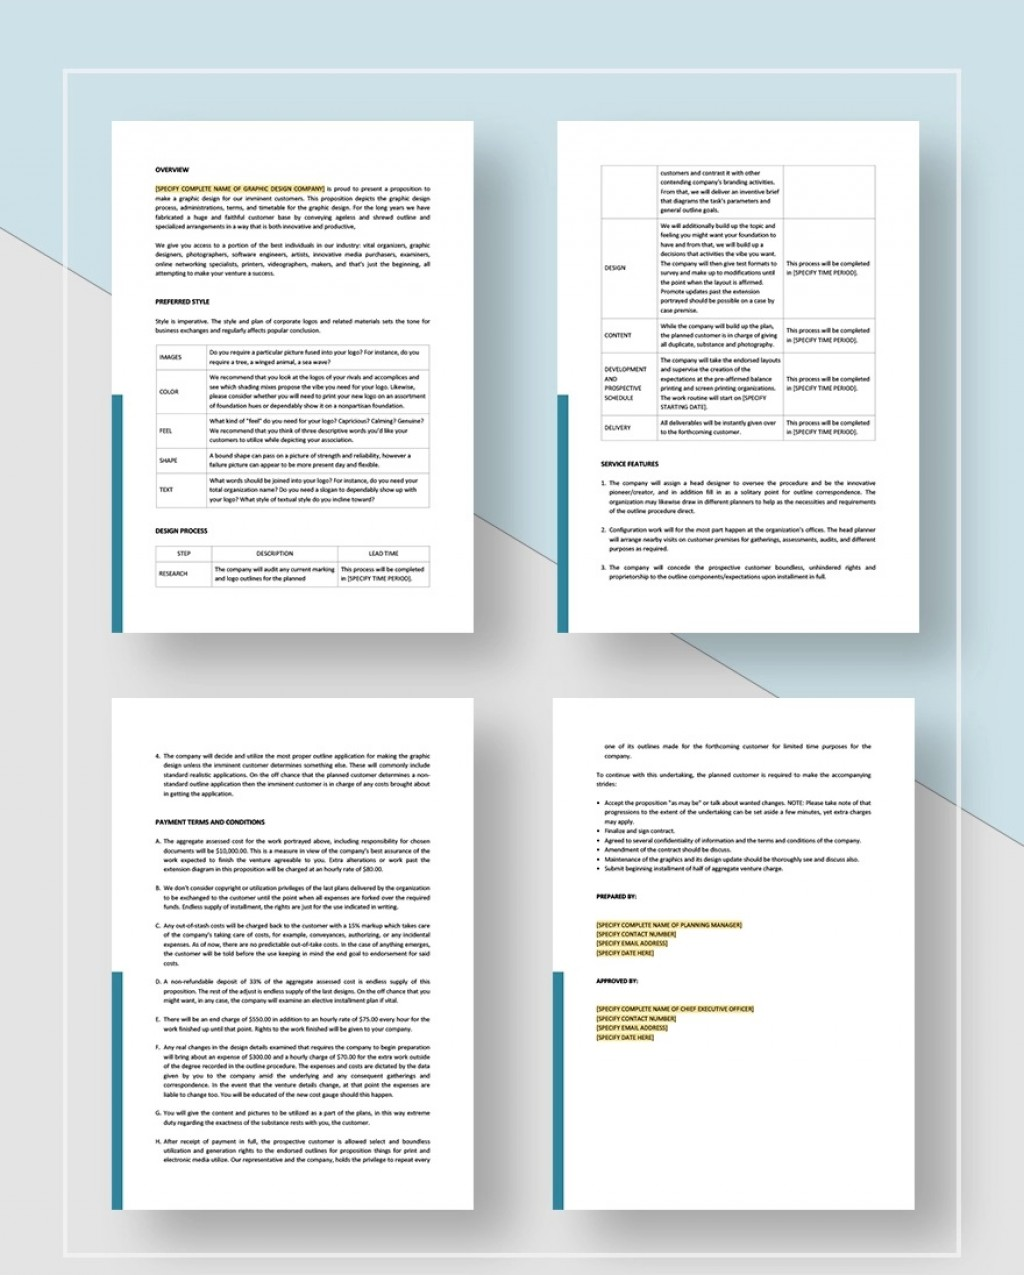 Graphic Design Proposal Template Sample Complete Jpg  Free Download IndesignLarge